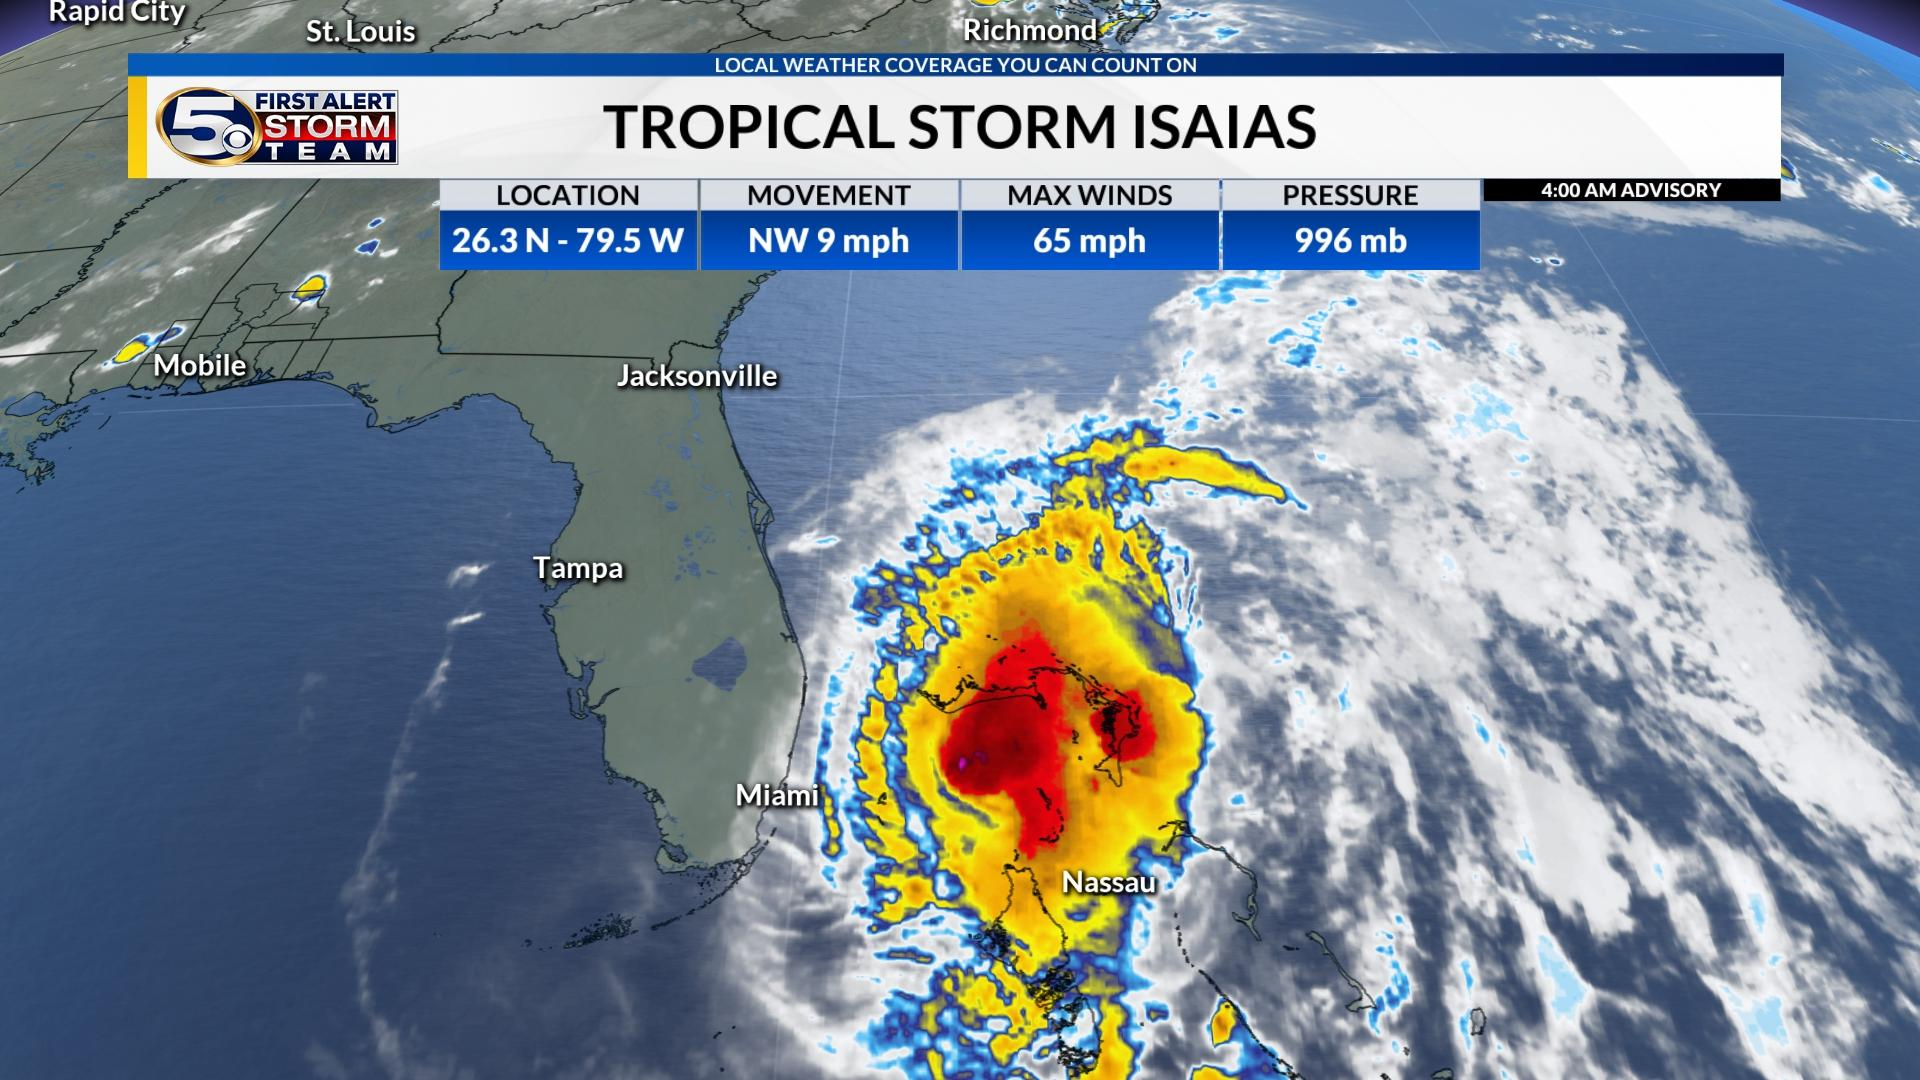 Isaias will remain a Tropical Storm as the center moves along the Florida Coast today